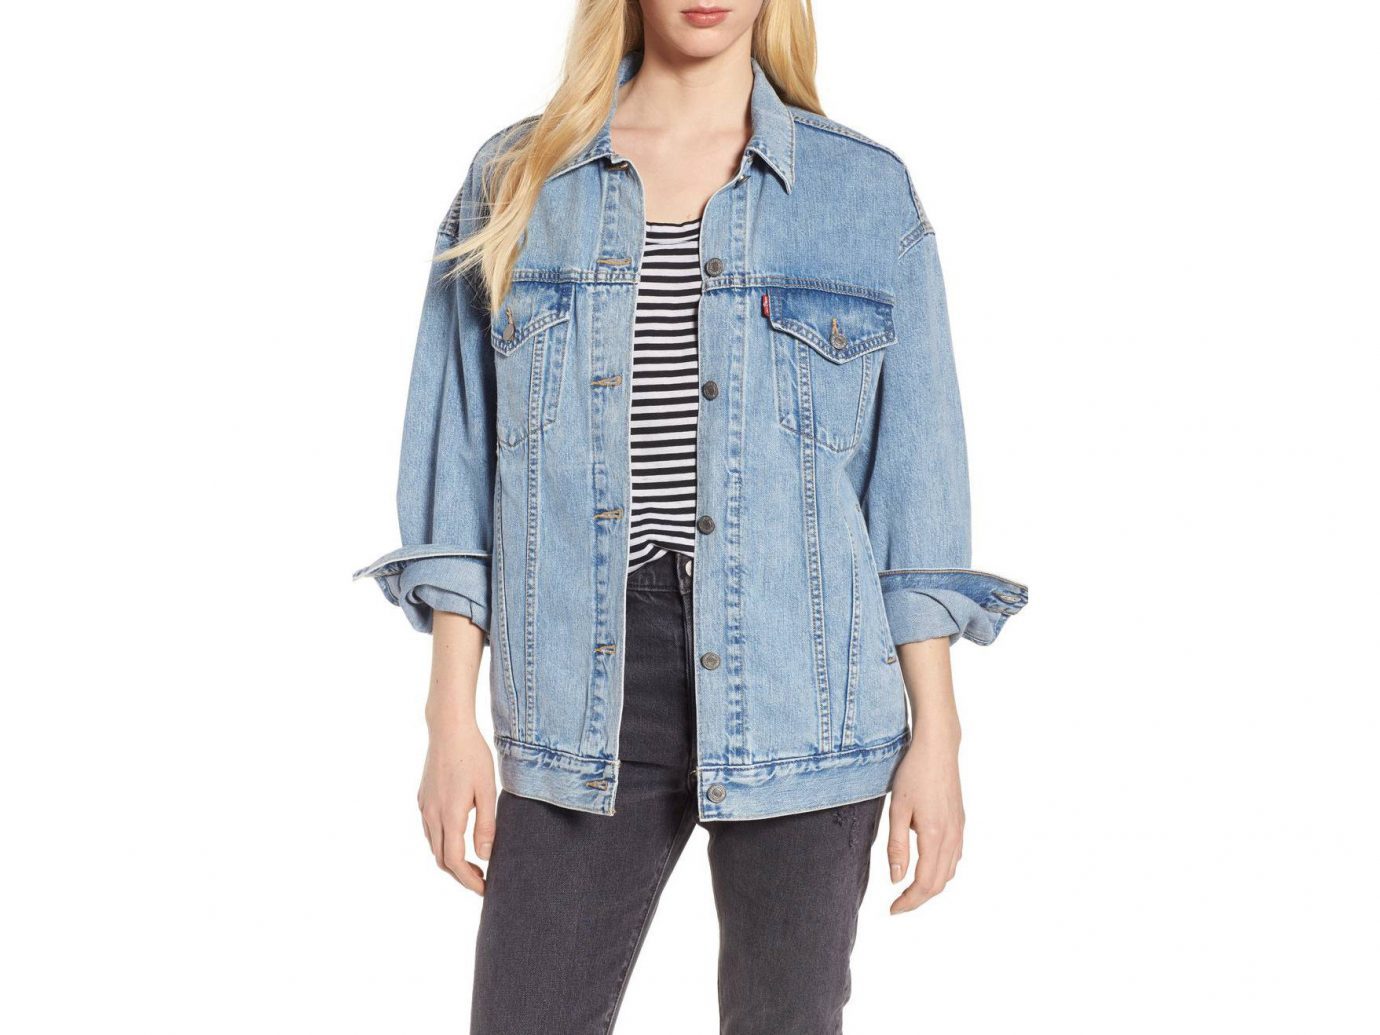 Style + Design Travel Shop person clothing standing denim jeans shoulder sleeve wearing posing jacket button